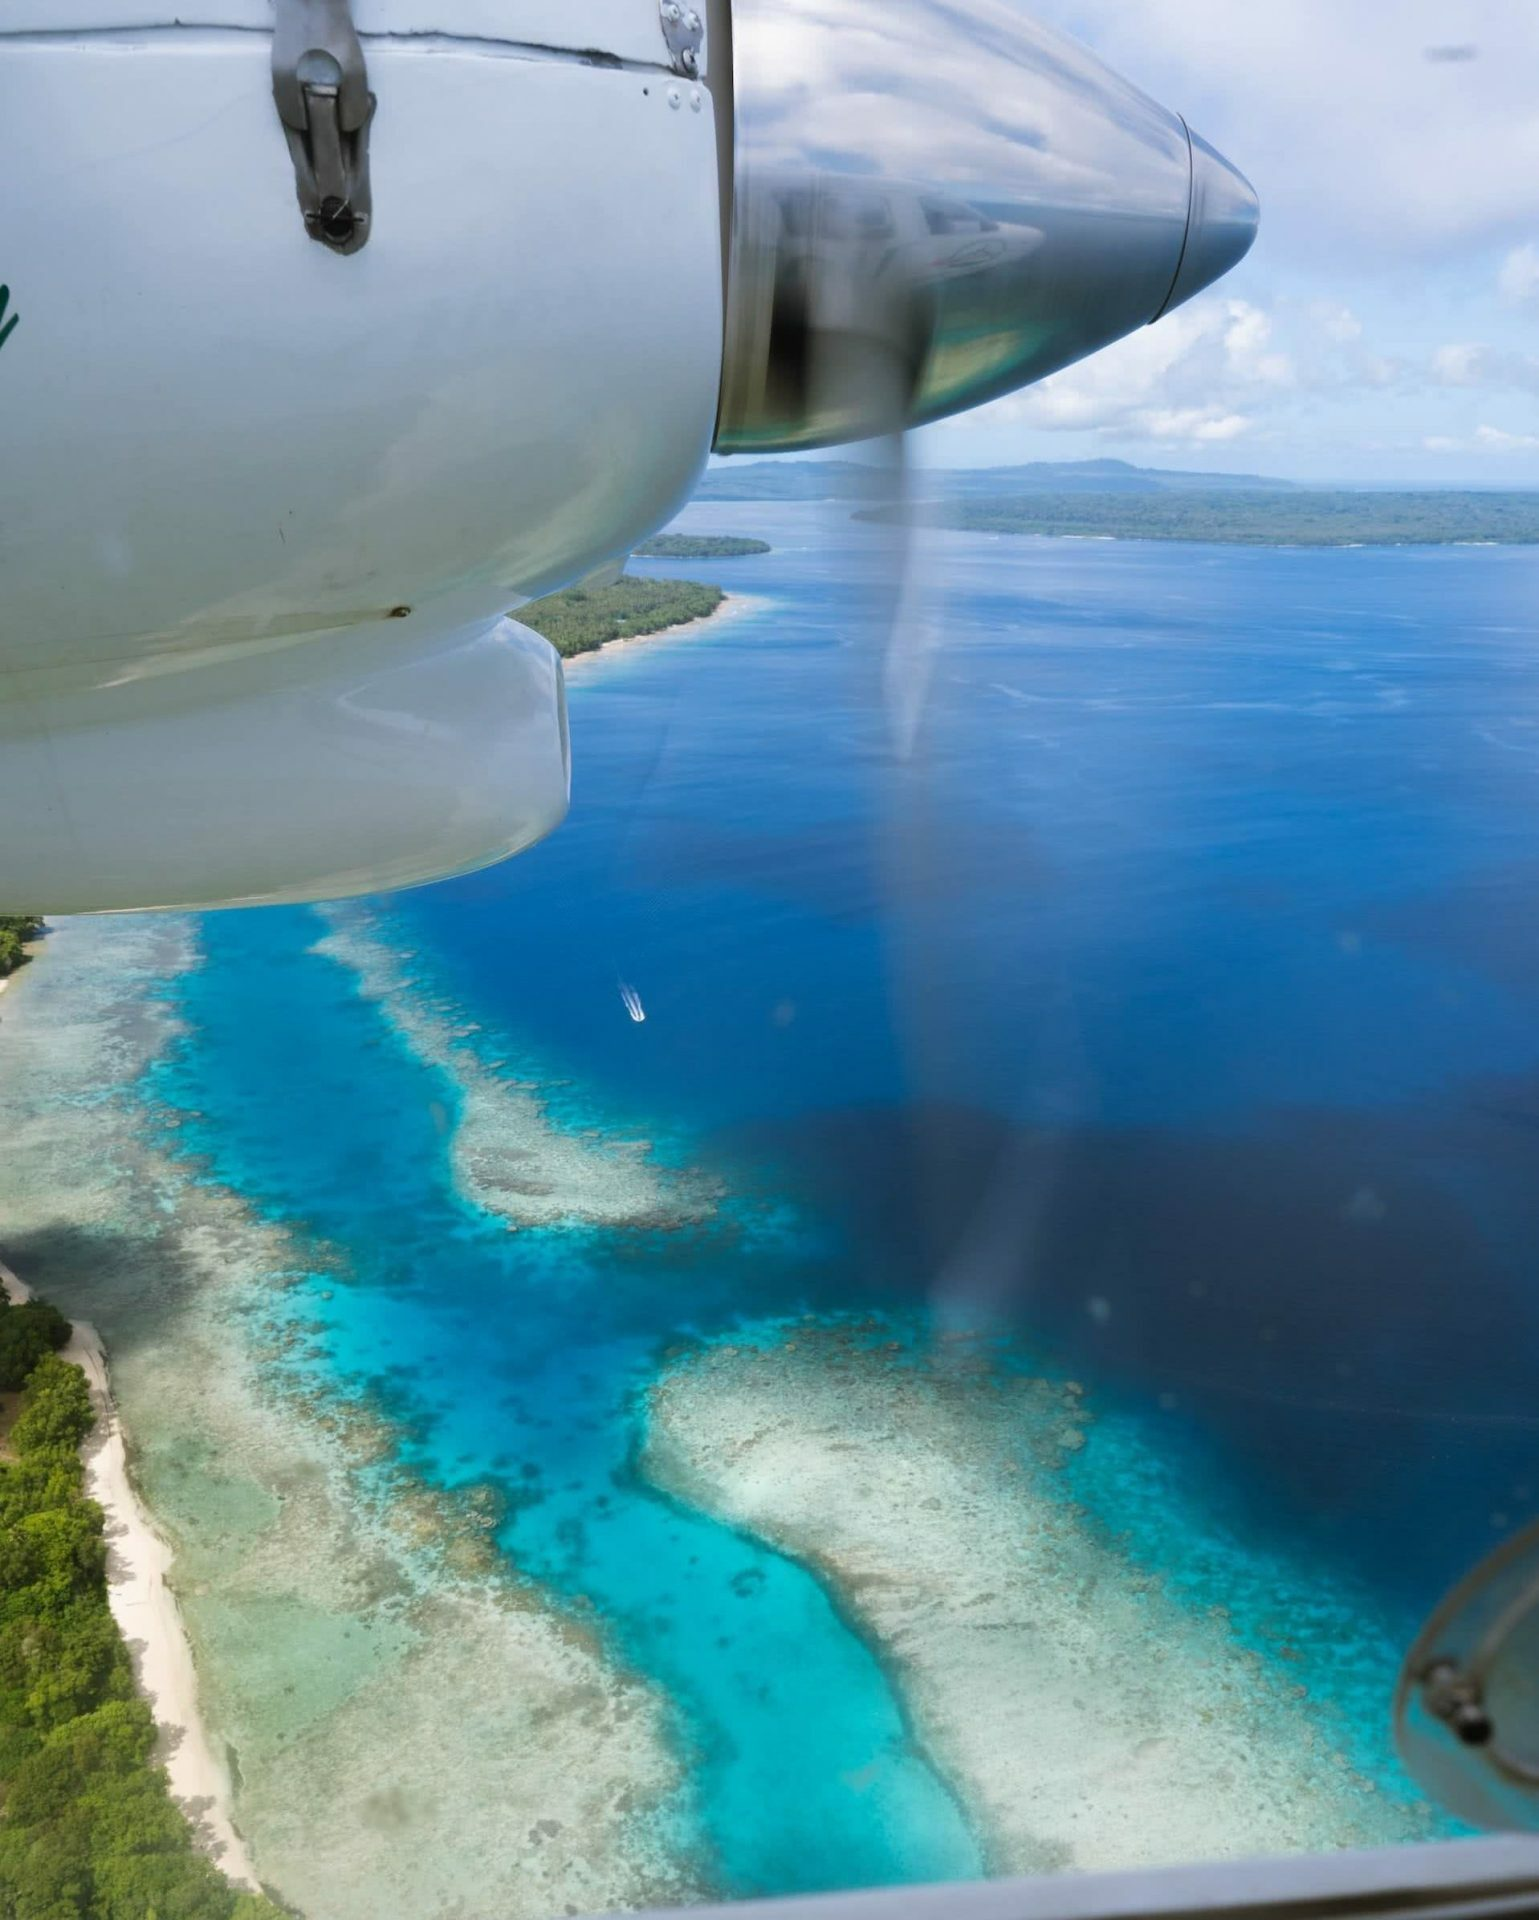 An Insider's Guide to Gaua, photos by Ben Savage and Ain Raadik, Ruby Claire, Vanuatu, island, plane view, window seat, ocean, reef, coastline